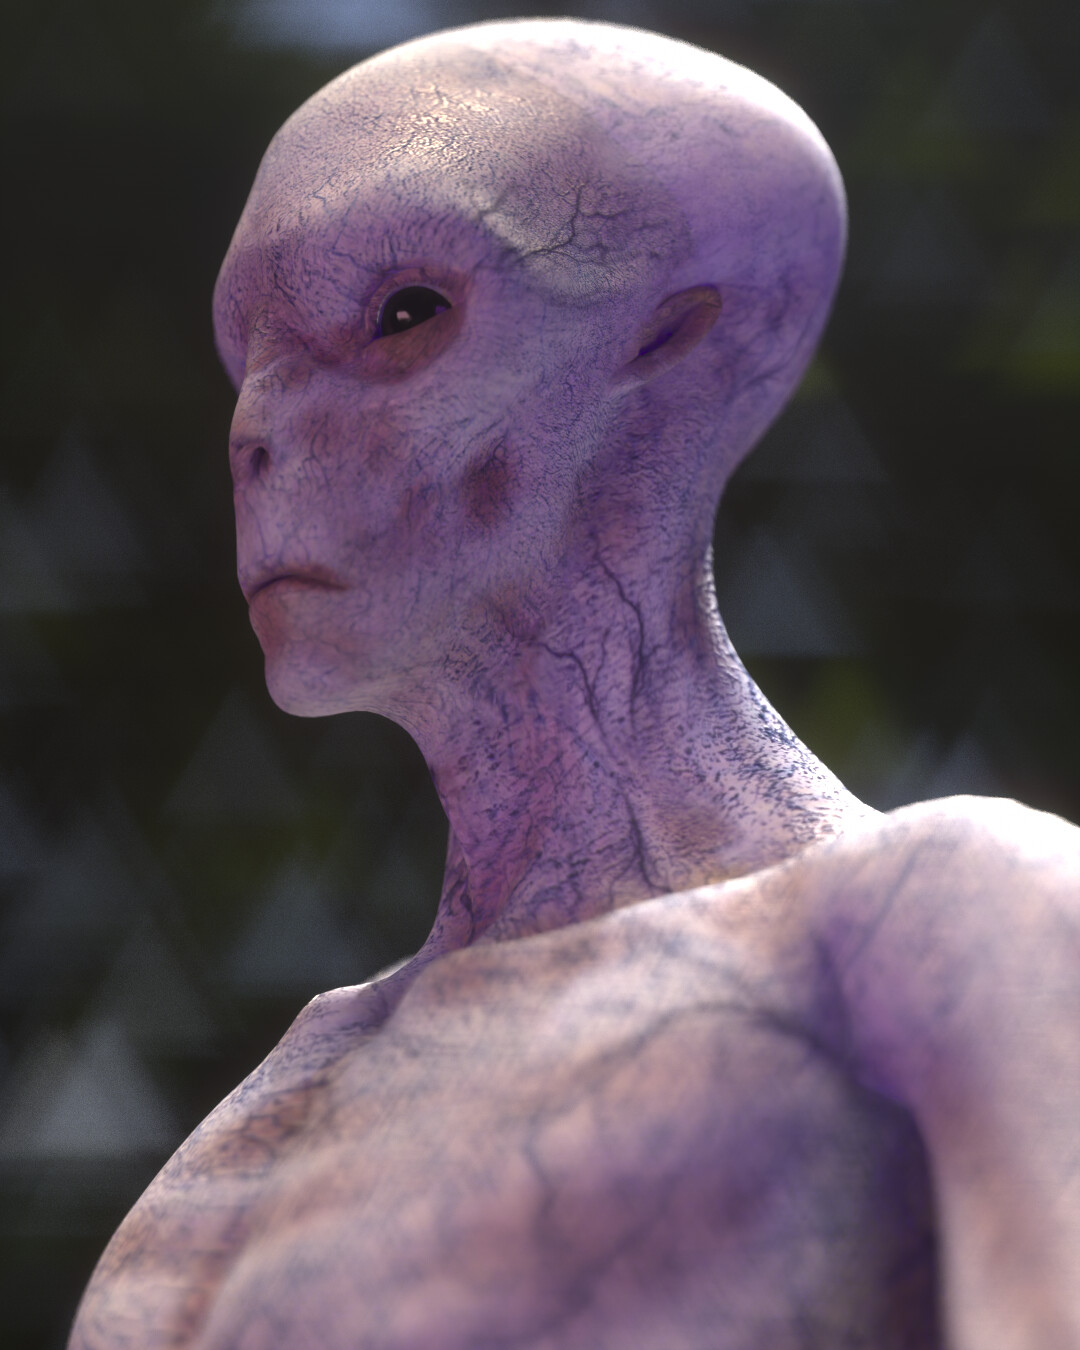 Kris hyde alien skin shader beauty2